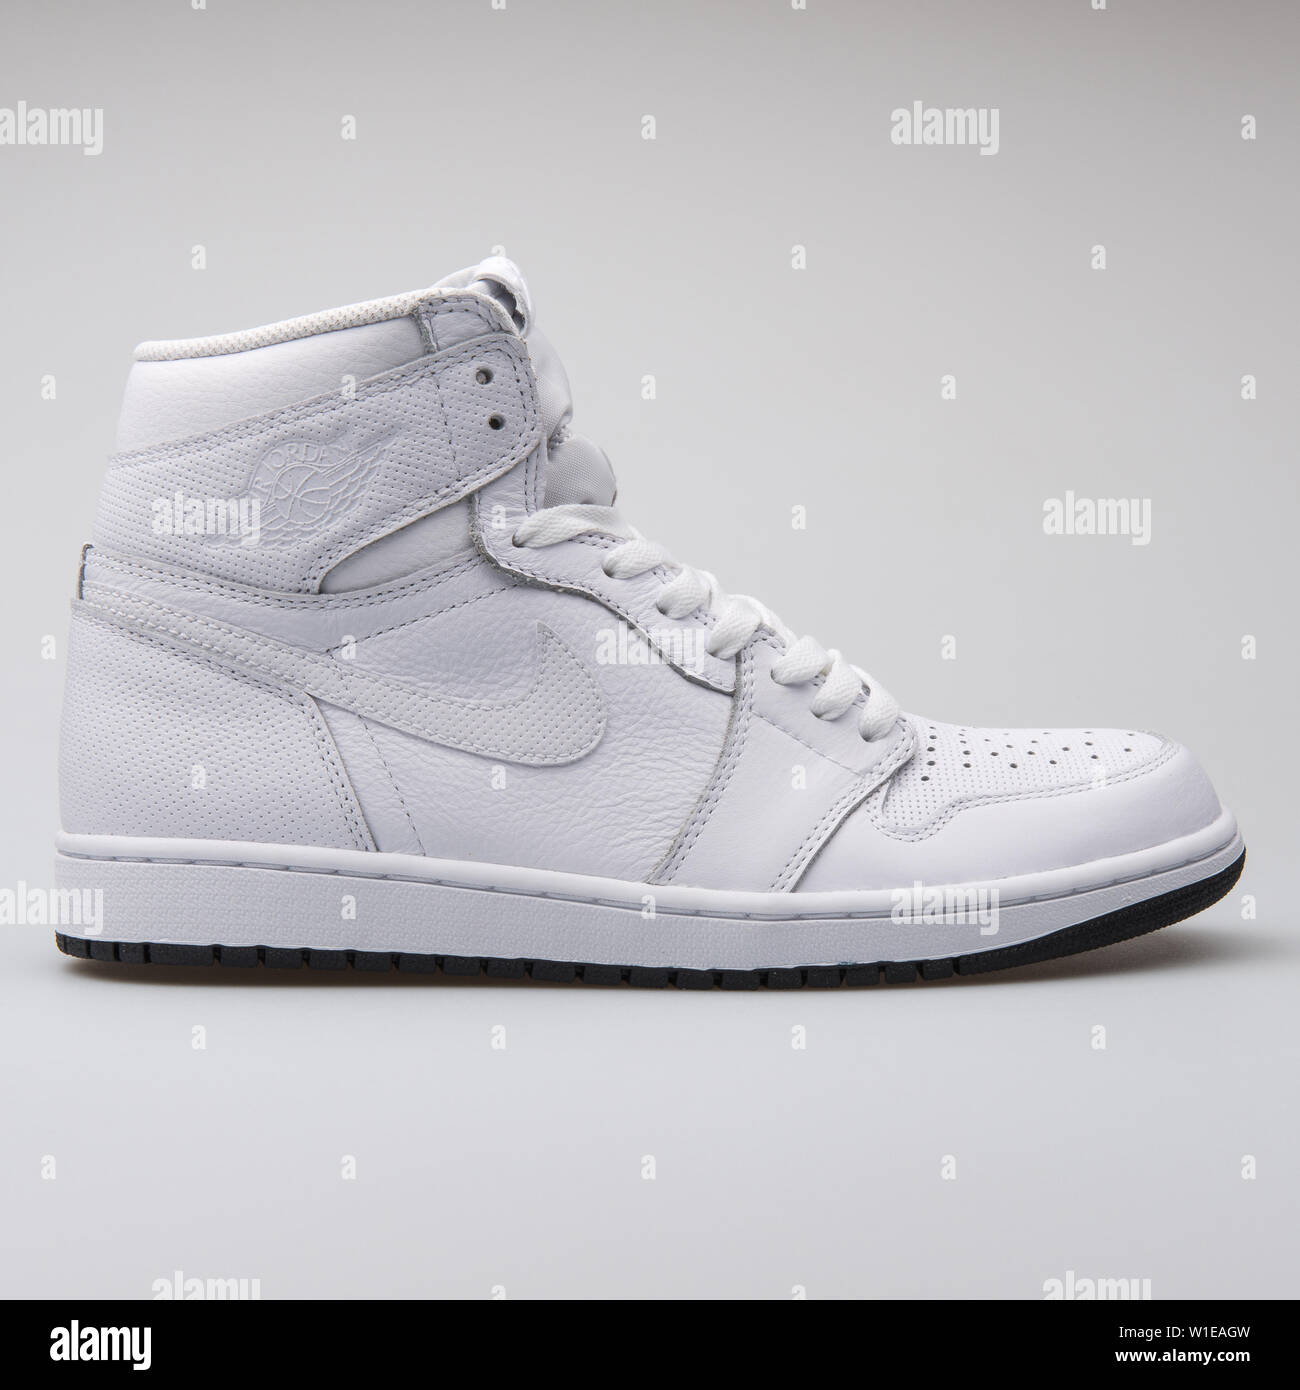 air jordan 1 retro blancas